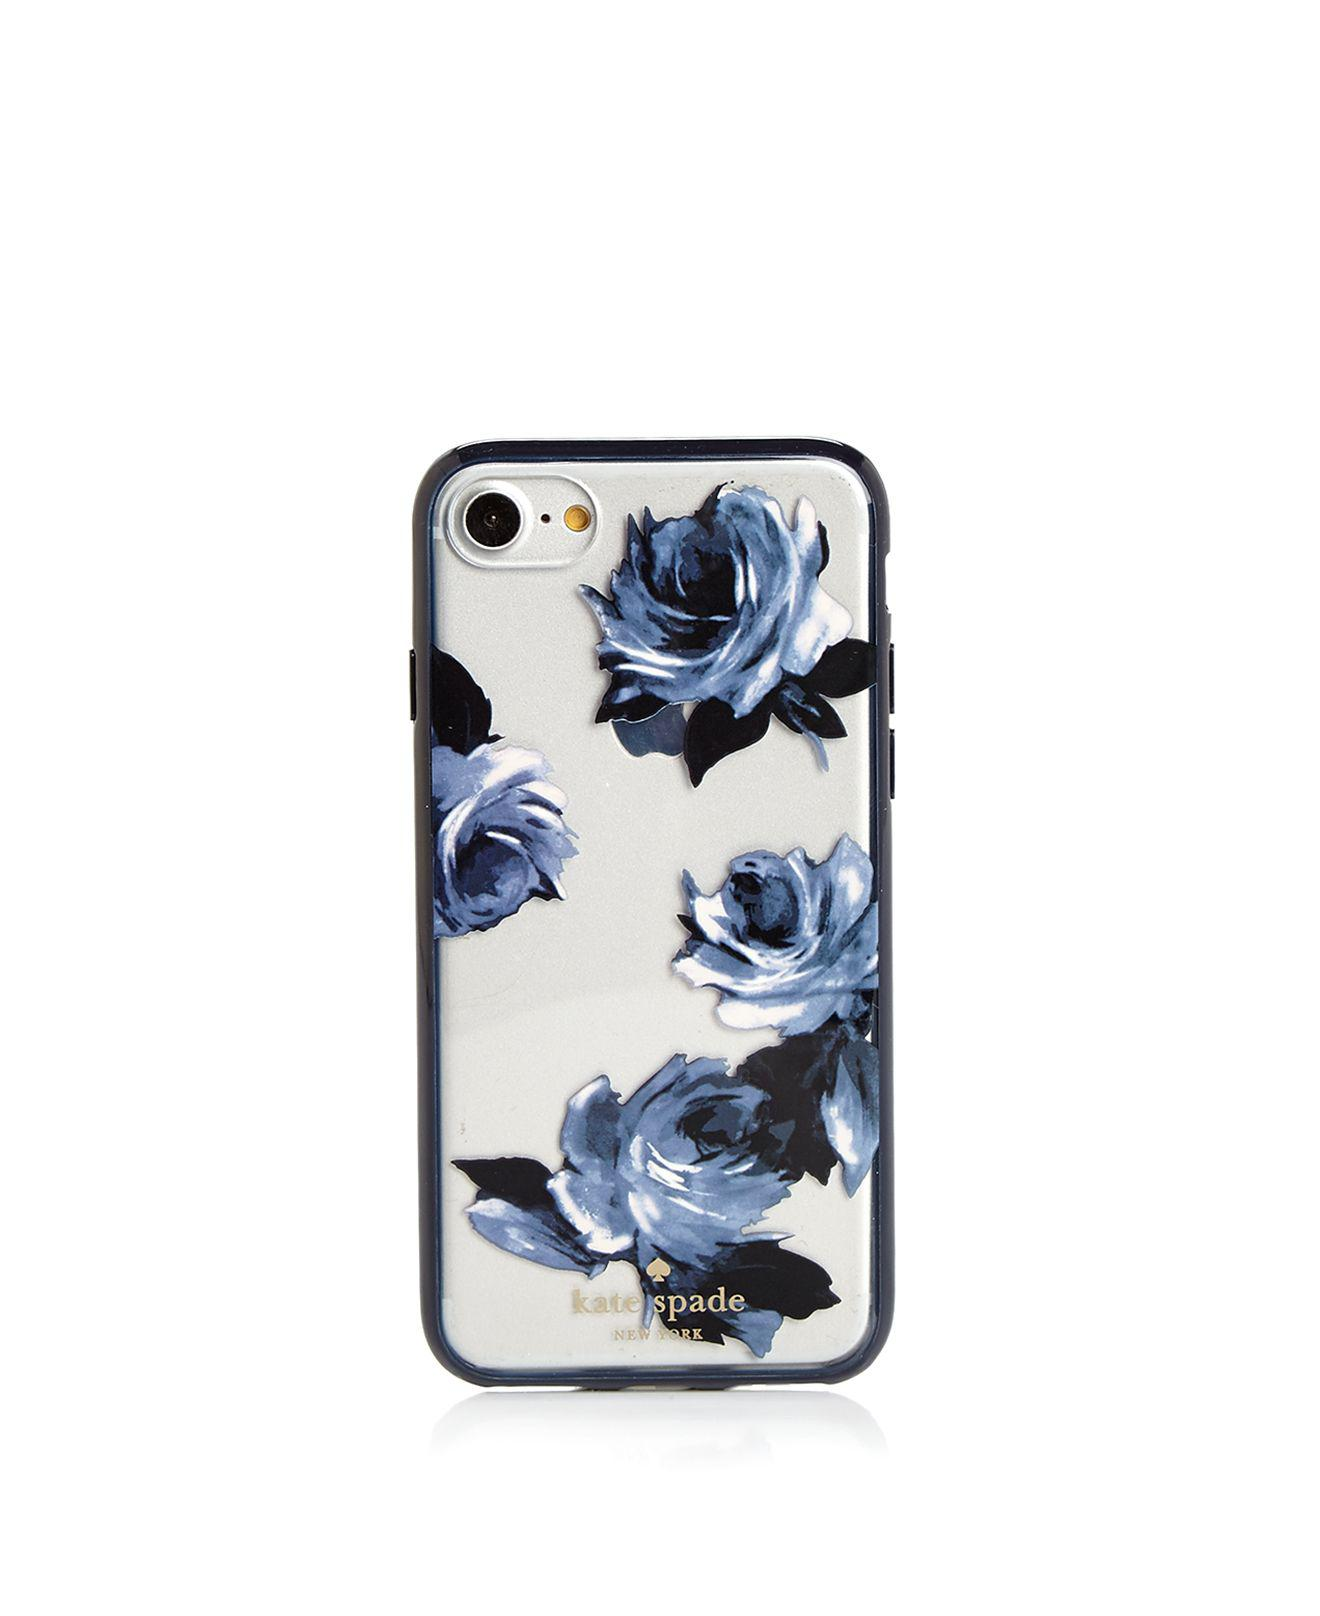 Kate Spade Iphone  Case Uk